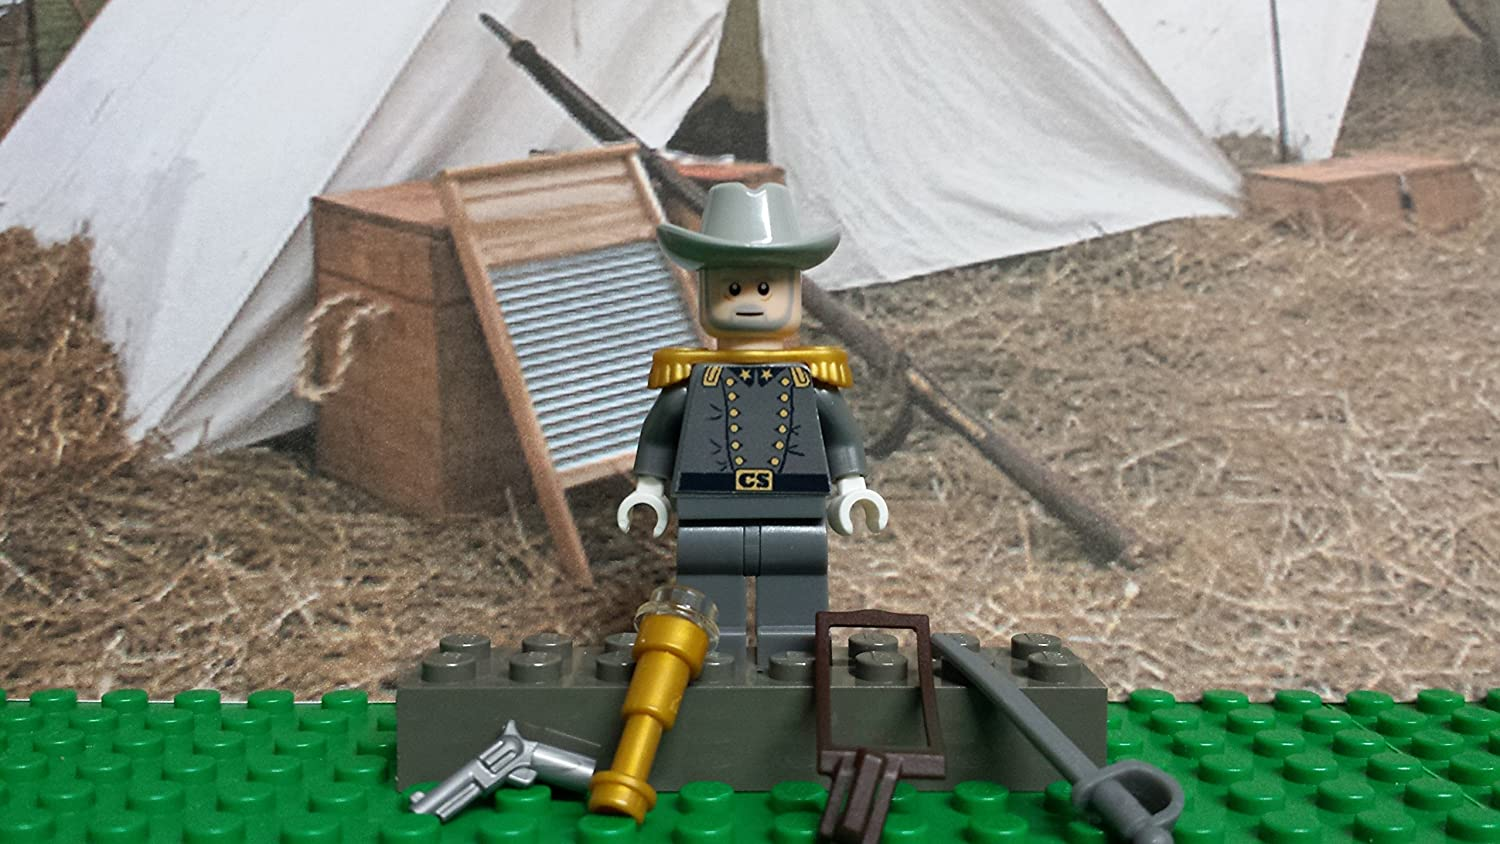 LEGO Civil War Confederate General Robert E. Lee. Army of Northern Va!